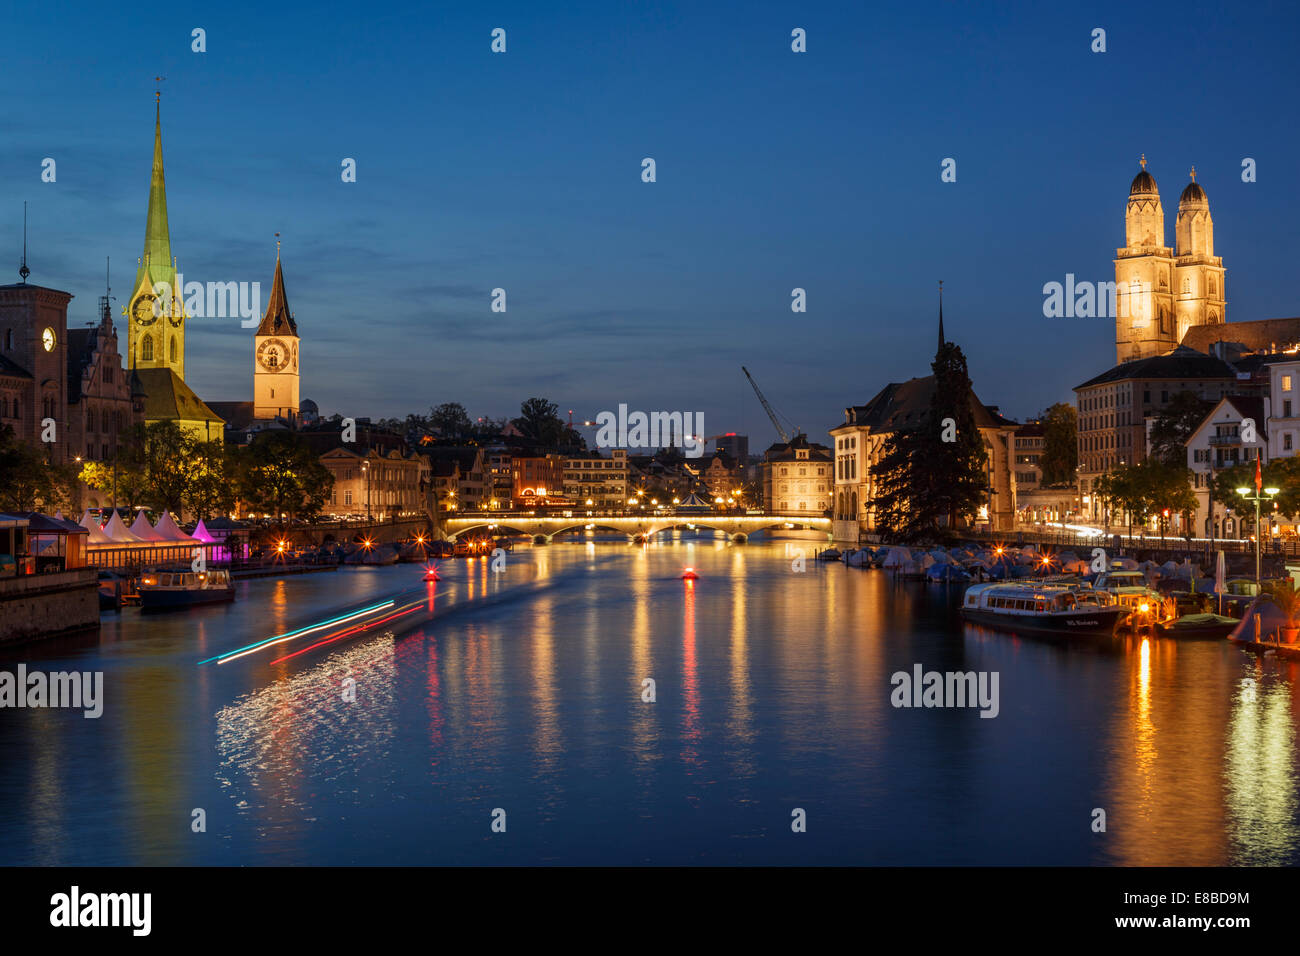 The old town of Zurich at night with the river Limmat with light trails of a waterbus, Switzerland. Stock Photo